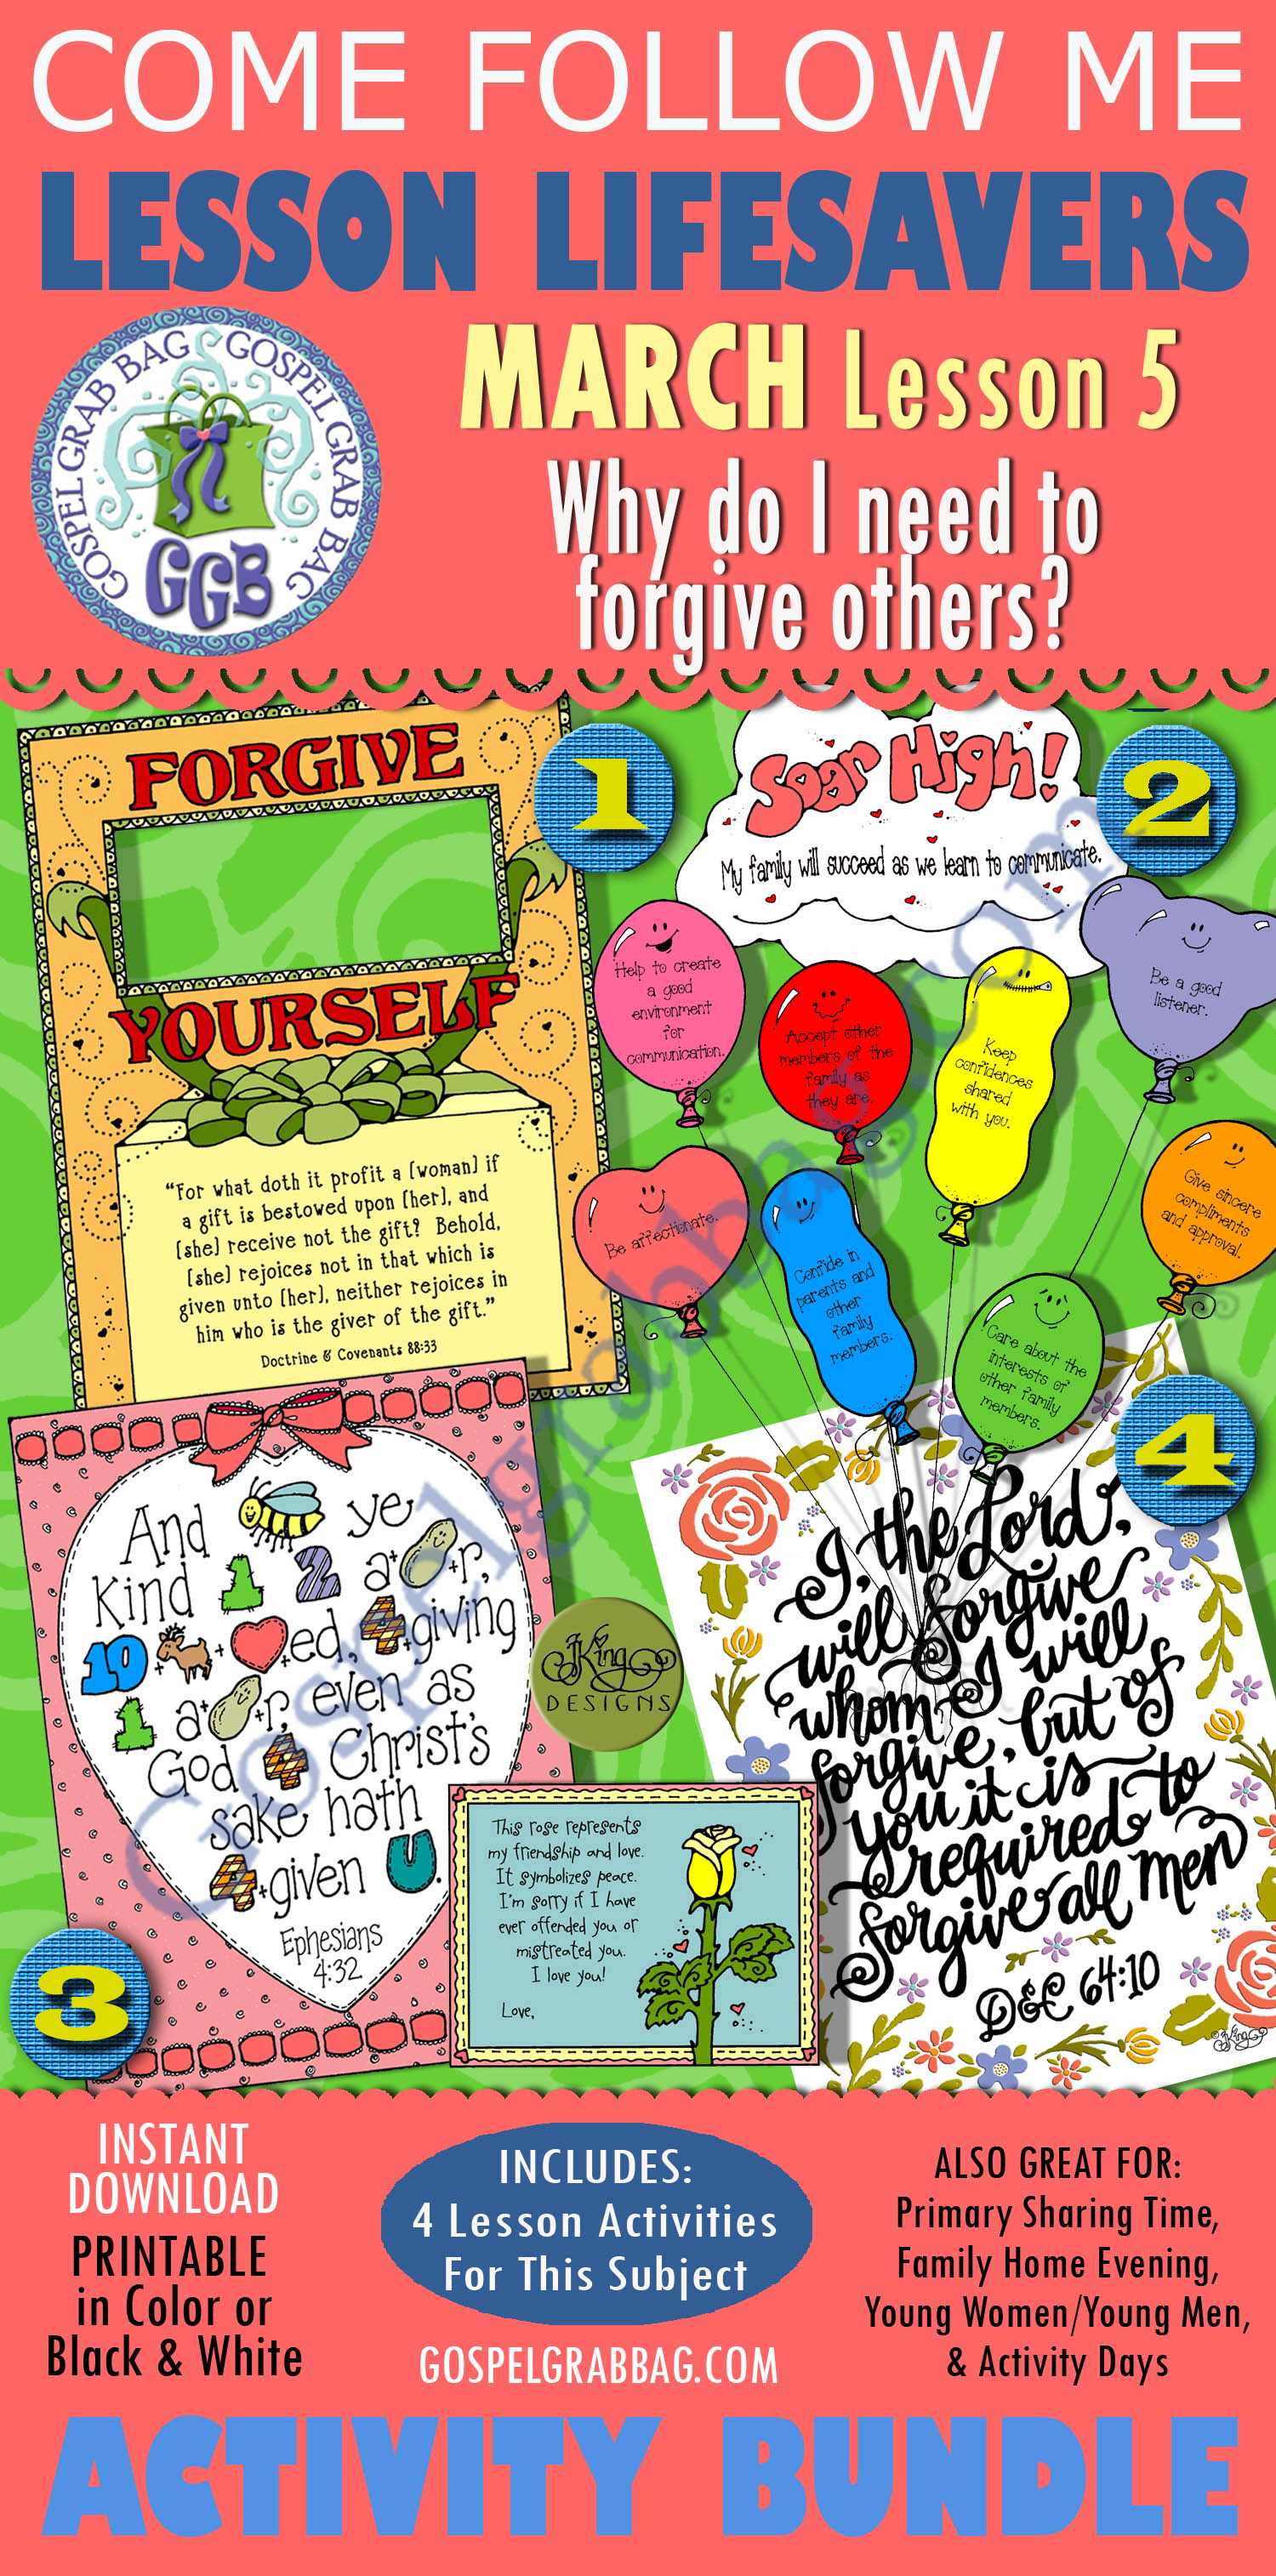 """$4.00 MARCH Lesson 5 - Come Follow Me """"Why do I need to forgive others?"""" Young Women LESSON LIFESAVERS, handouts, seminary, GospelGrabBag.com"""